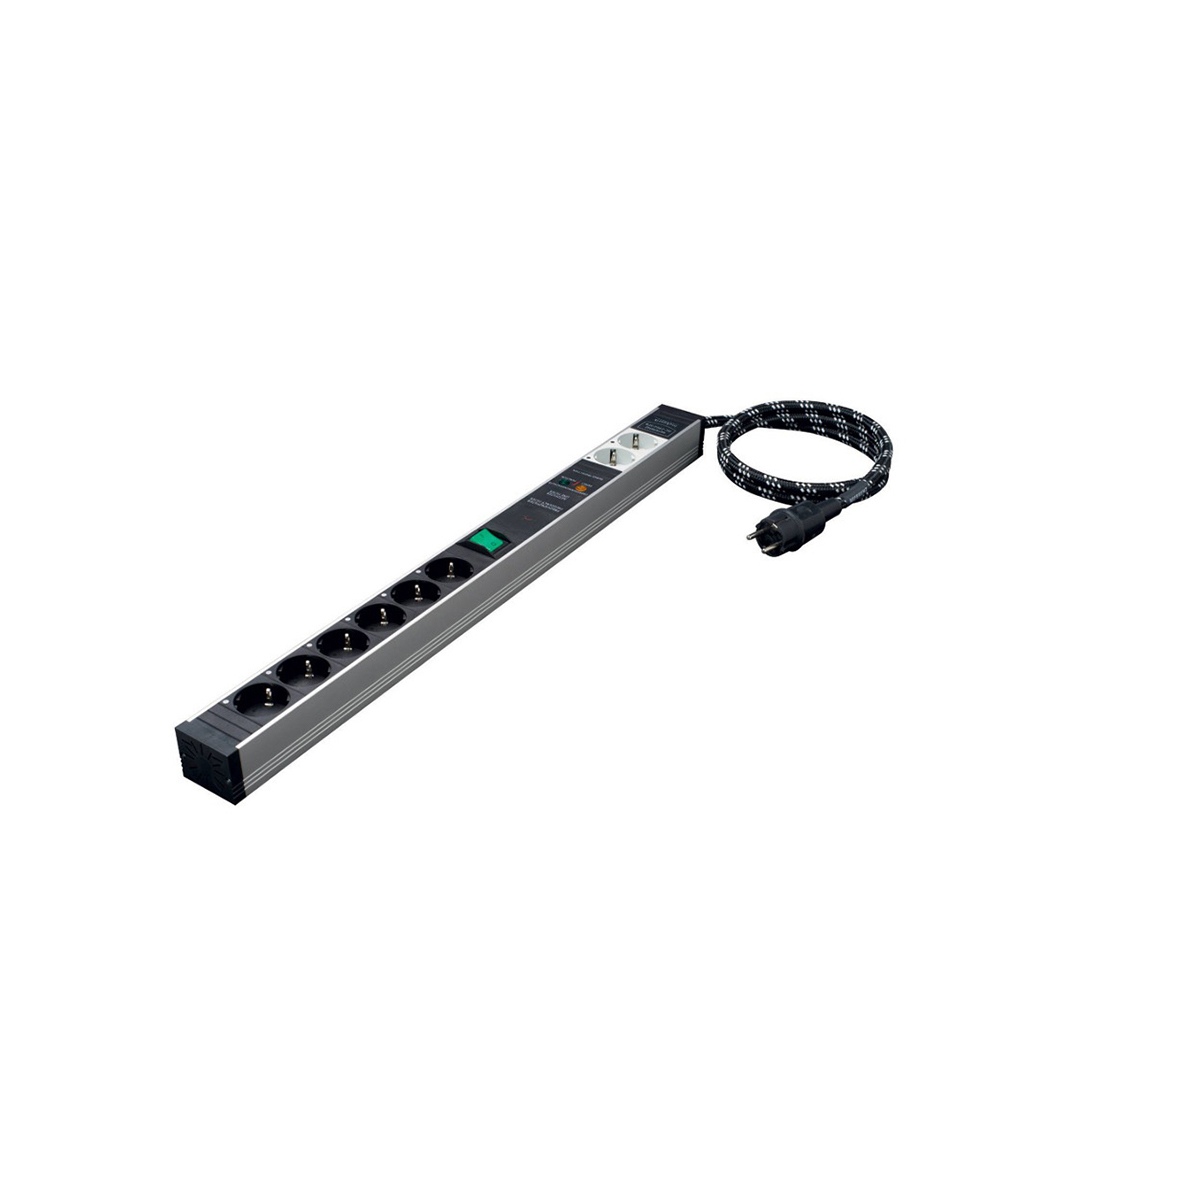 INAKUSTIK Referenz Power Bar AC-2502-SF8 3x2,5mm